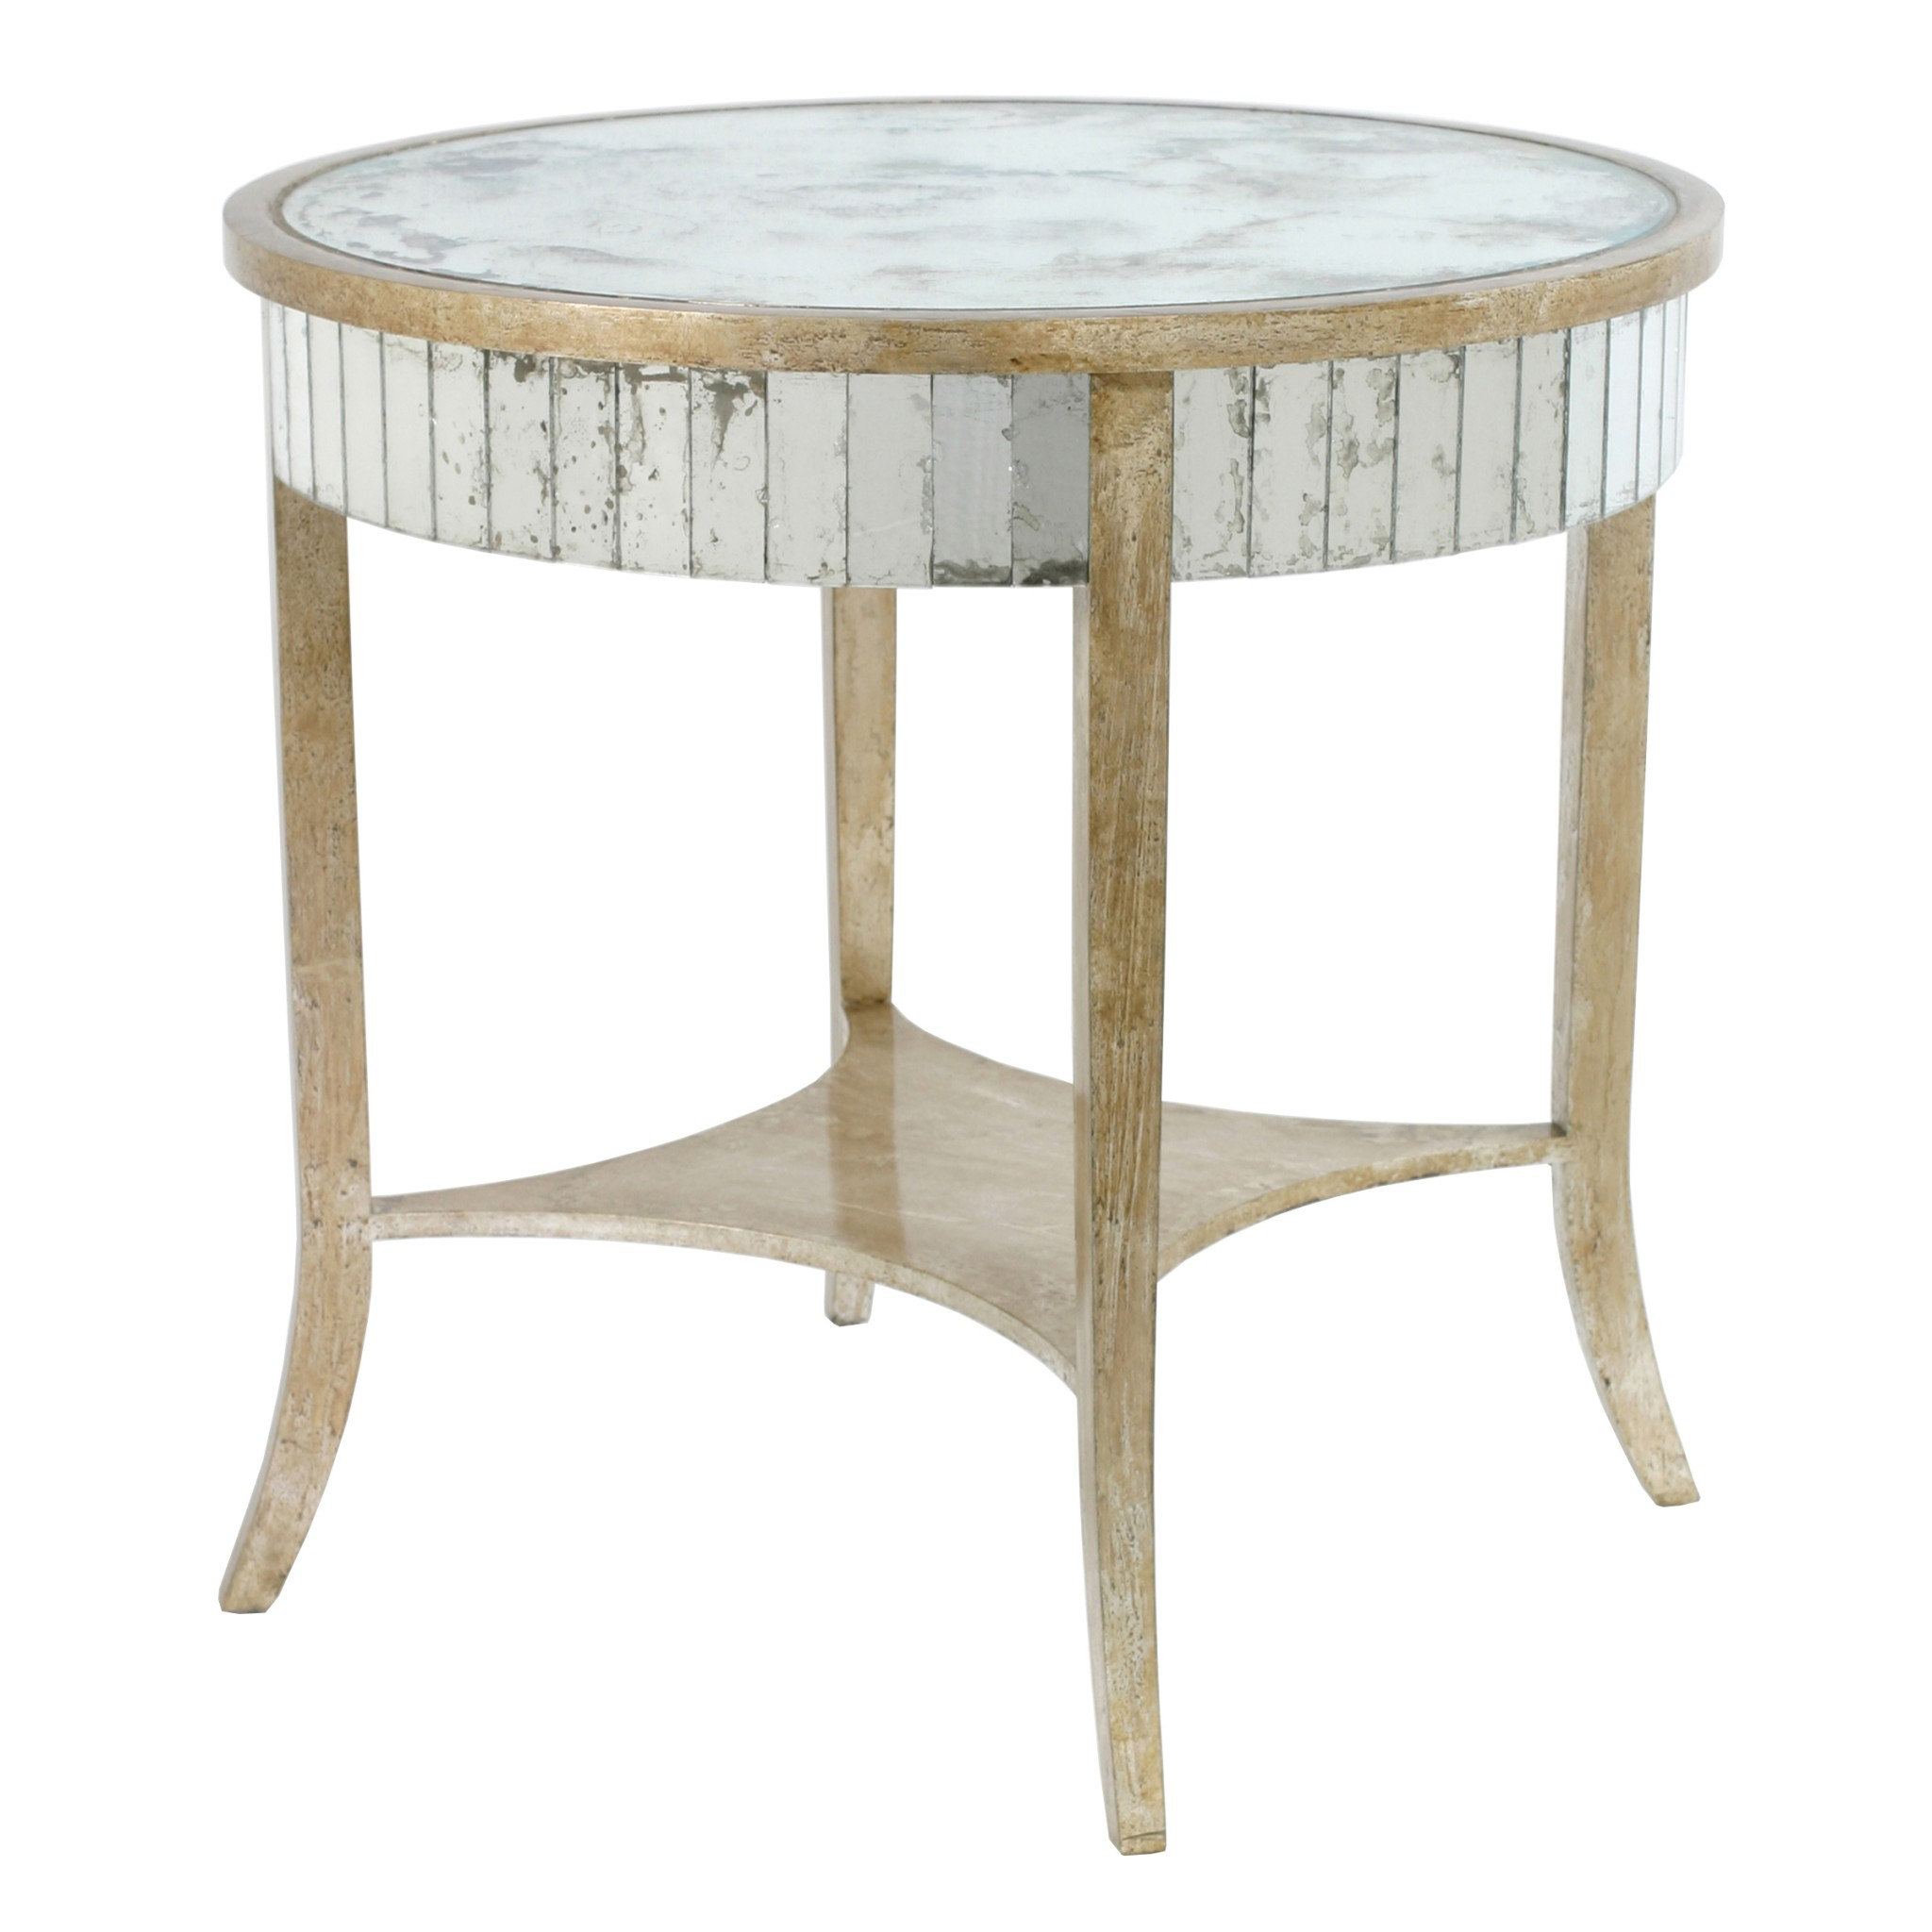 parquet side table niermann weeks accent target round concrete patio white wicker with glass top high dining set barn door cabinet drum nautical chair folding end wood lacquer